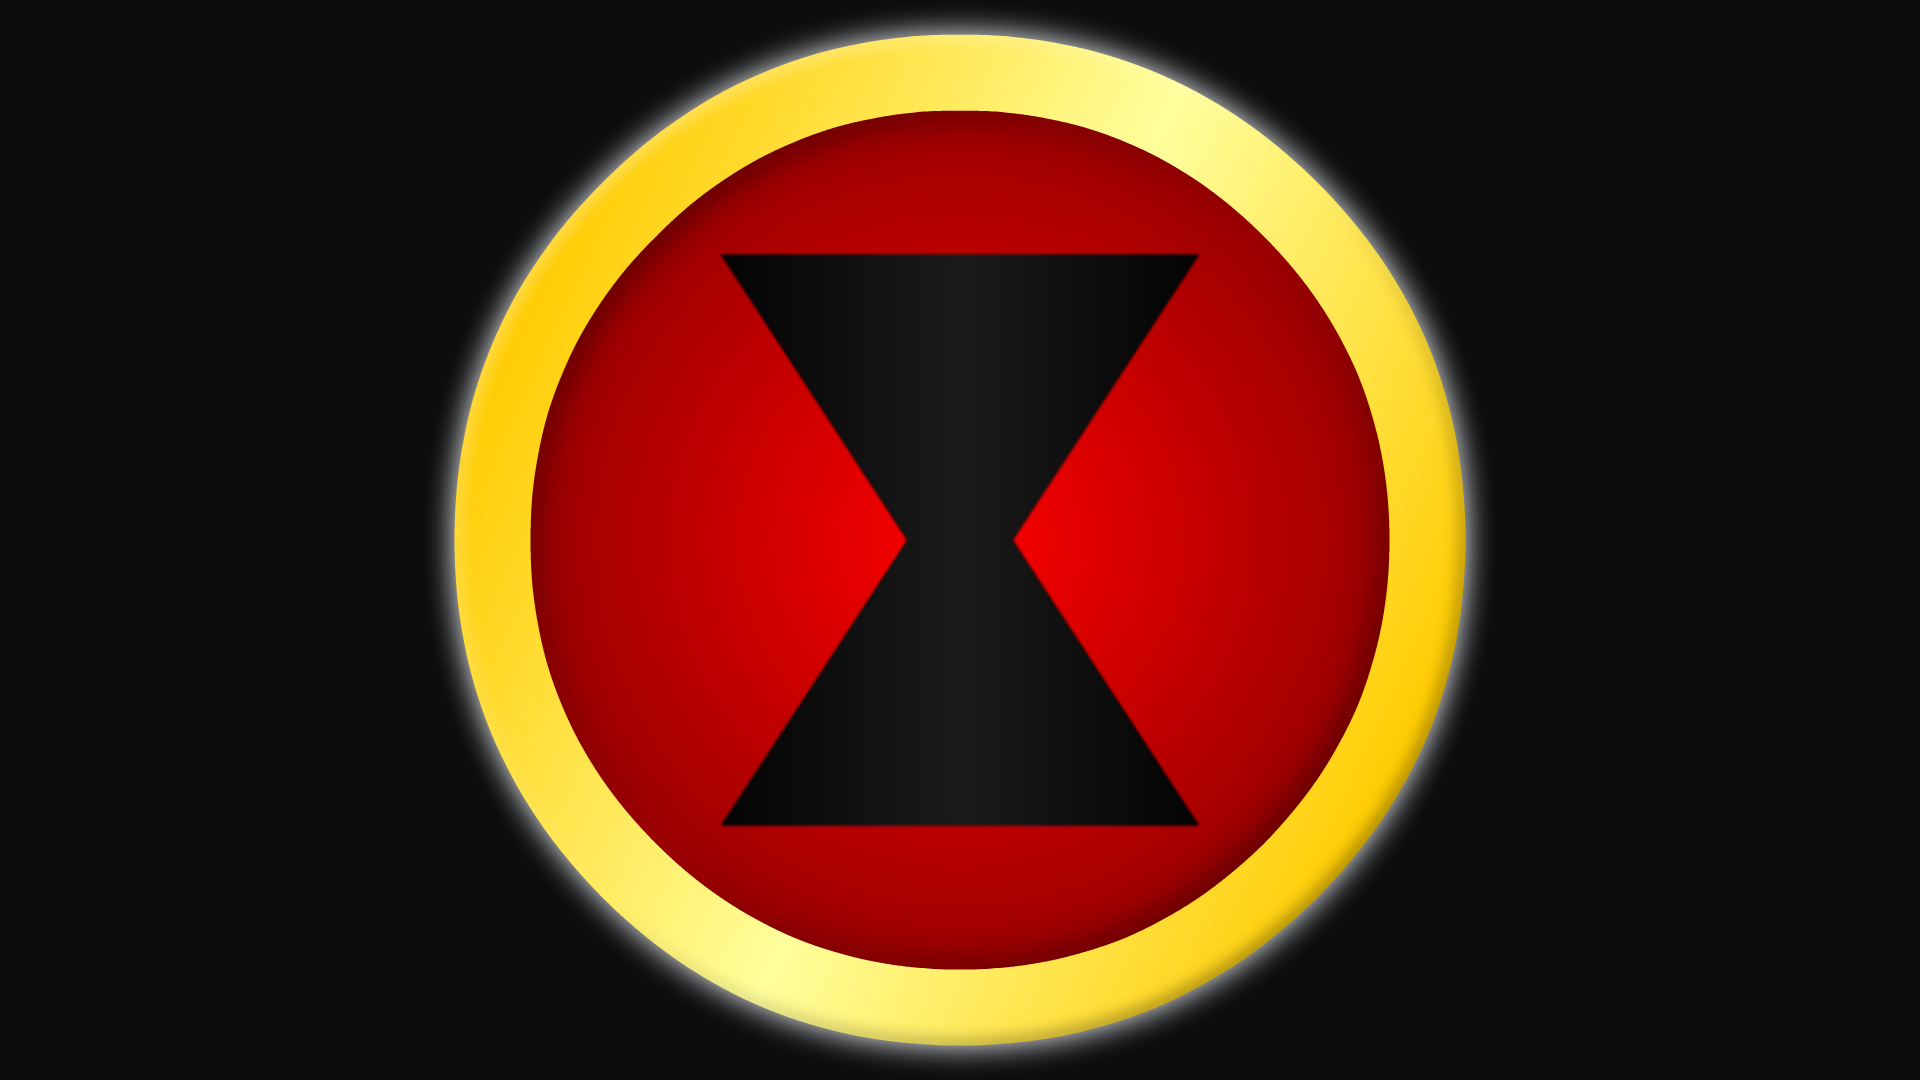 Black widow marvel avengers symbol - photo#1